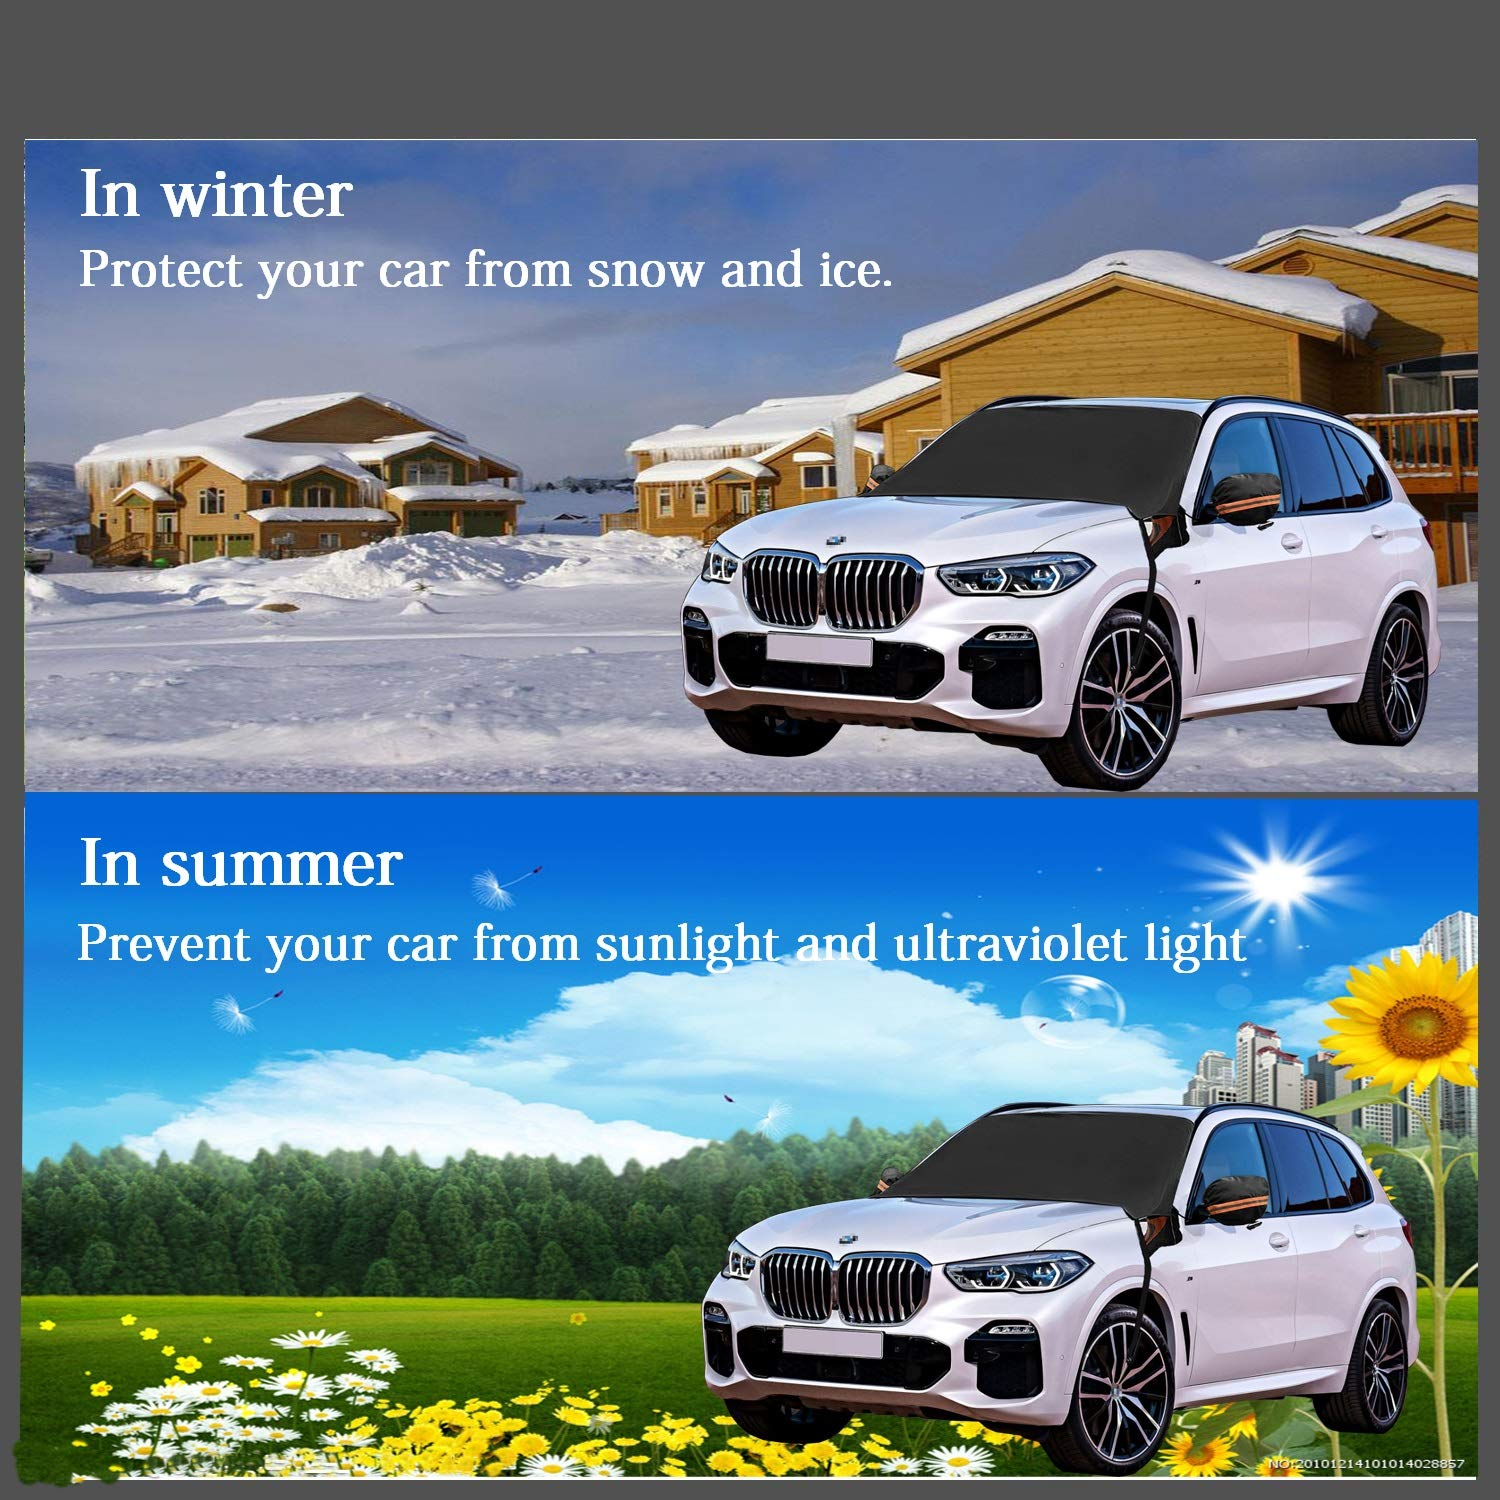 YIHUNION Car Windshield Snow Cover Windscreen Winter Cover with Side Mirror Covers and Magnetic Edges for Most Vehicles Waterproof Windshield Covers for Ice Snow Frost Full Protection Cars and SUV